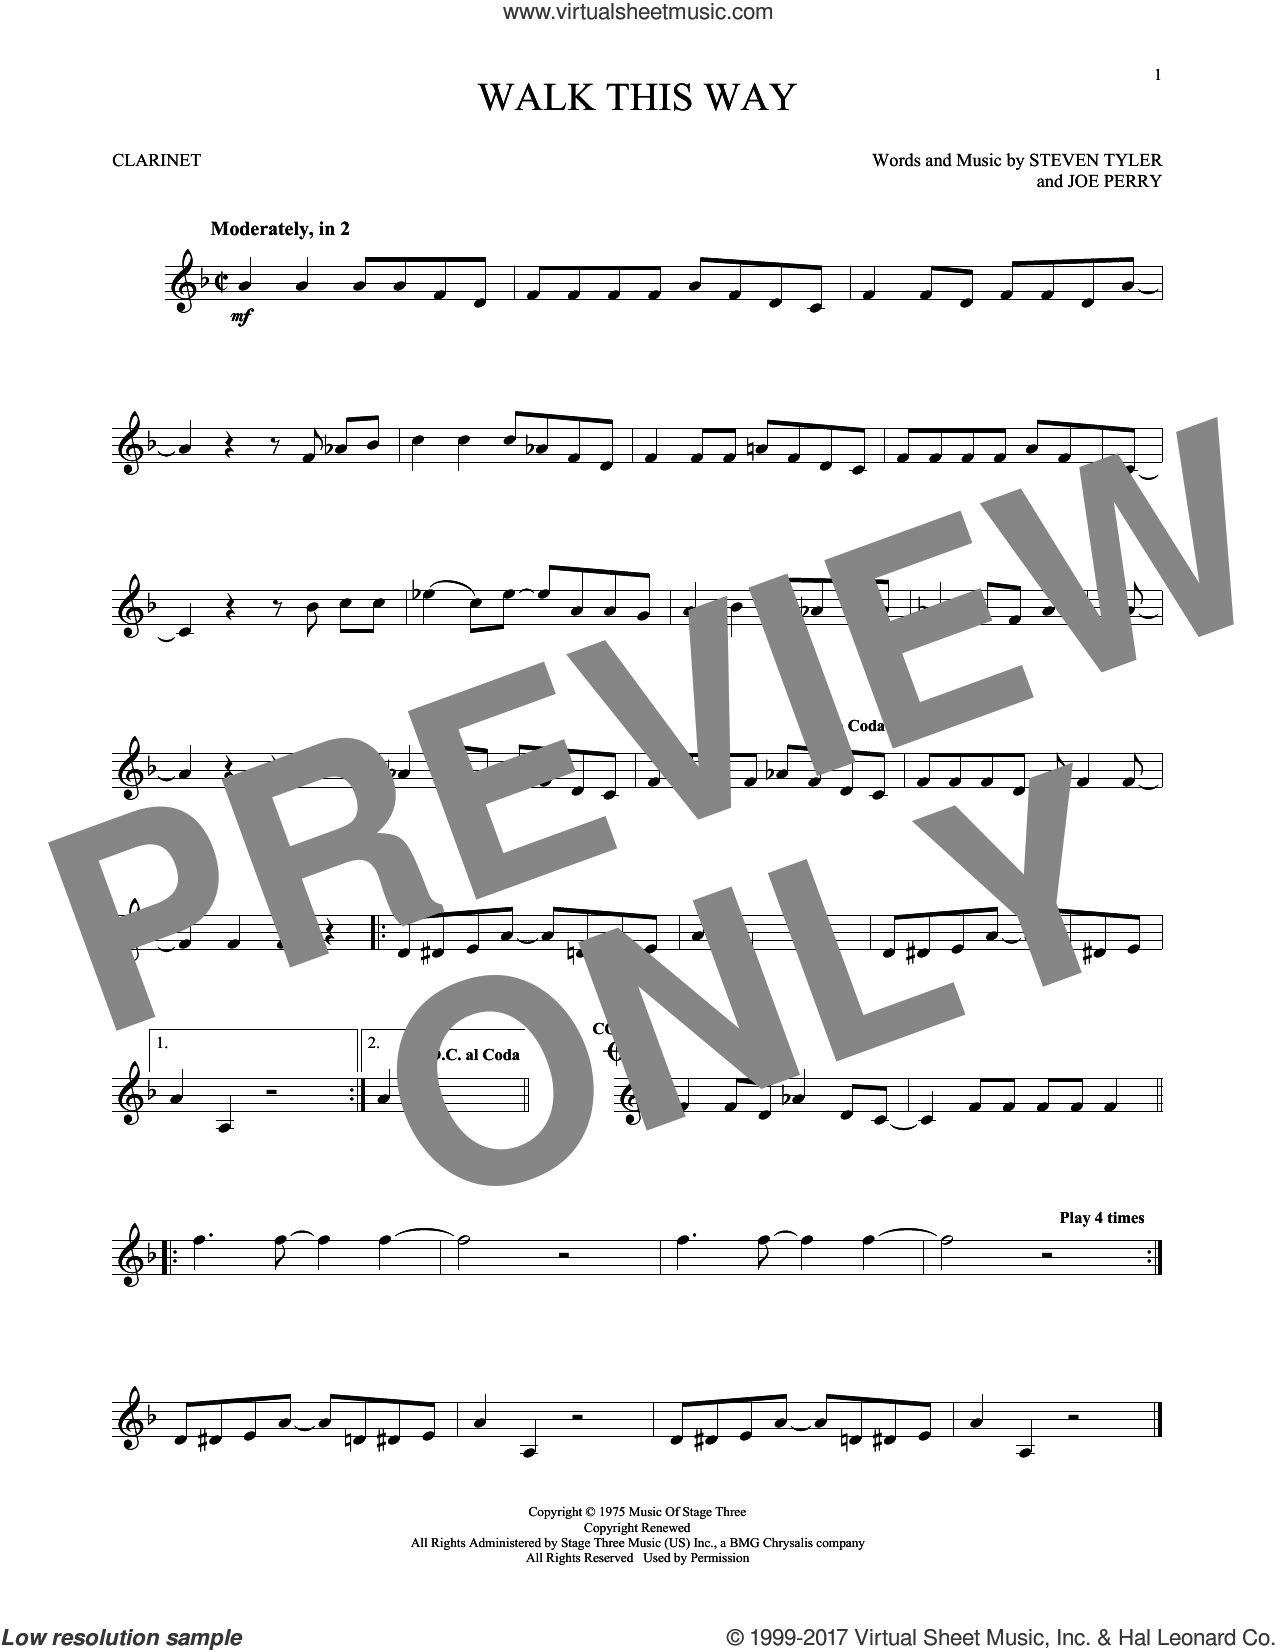 Walk This Way sheet music for clarinet solo by Aerosmith, Run D.M.C., Joe Perry and Steven Tyler, intermediate